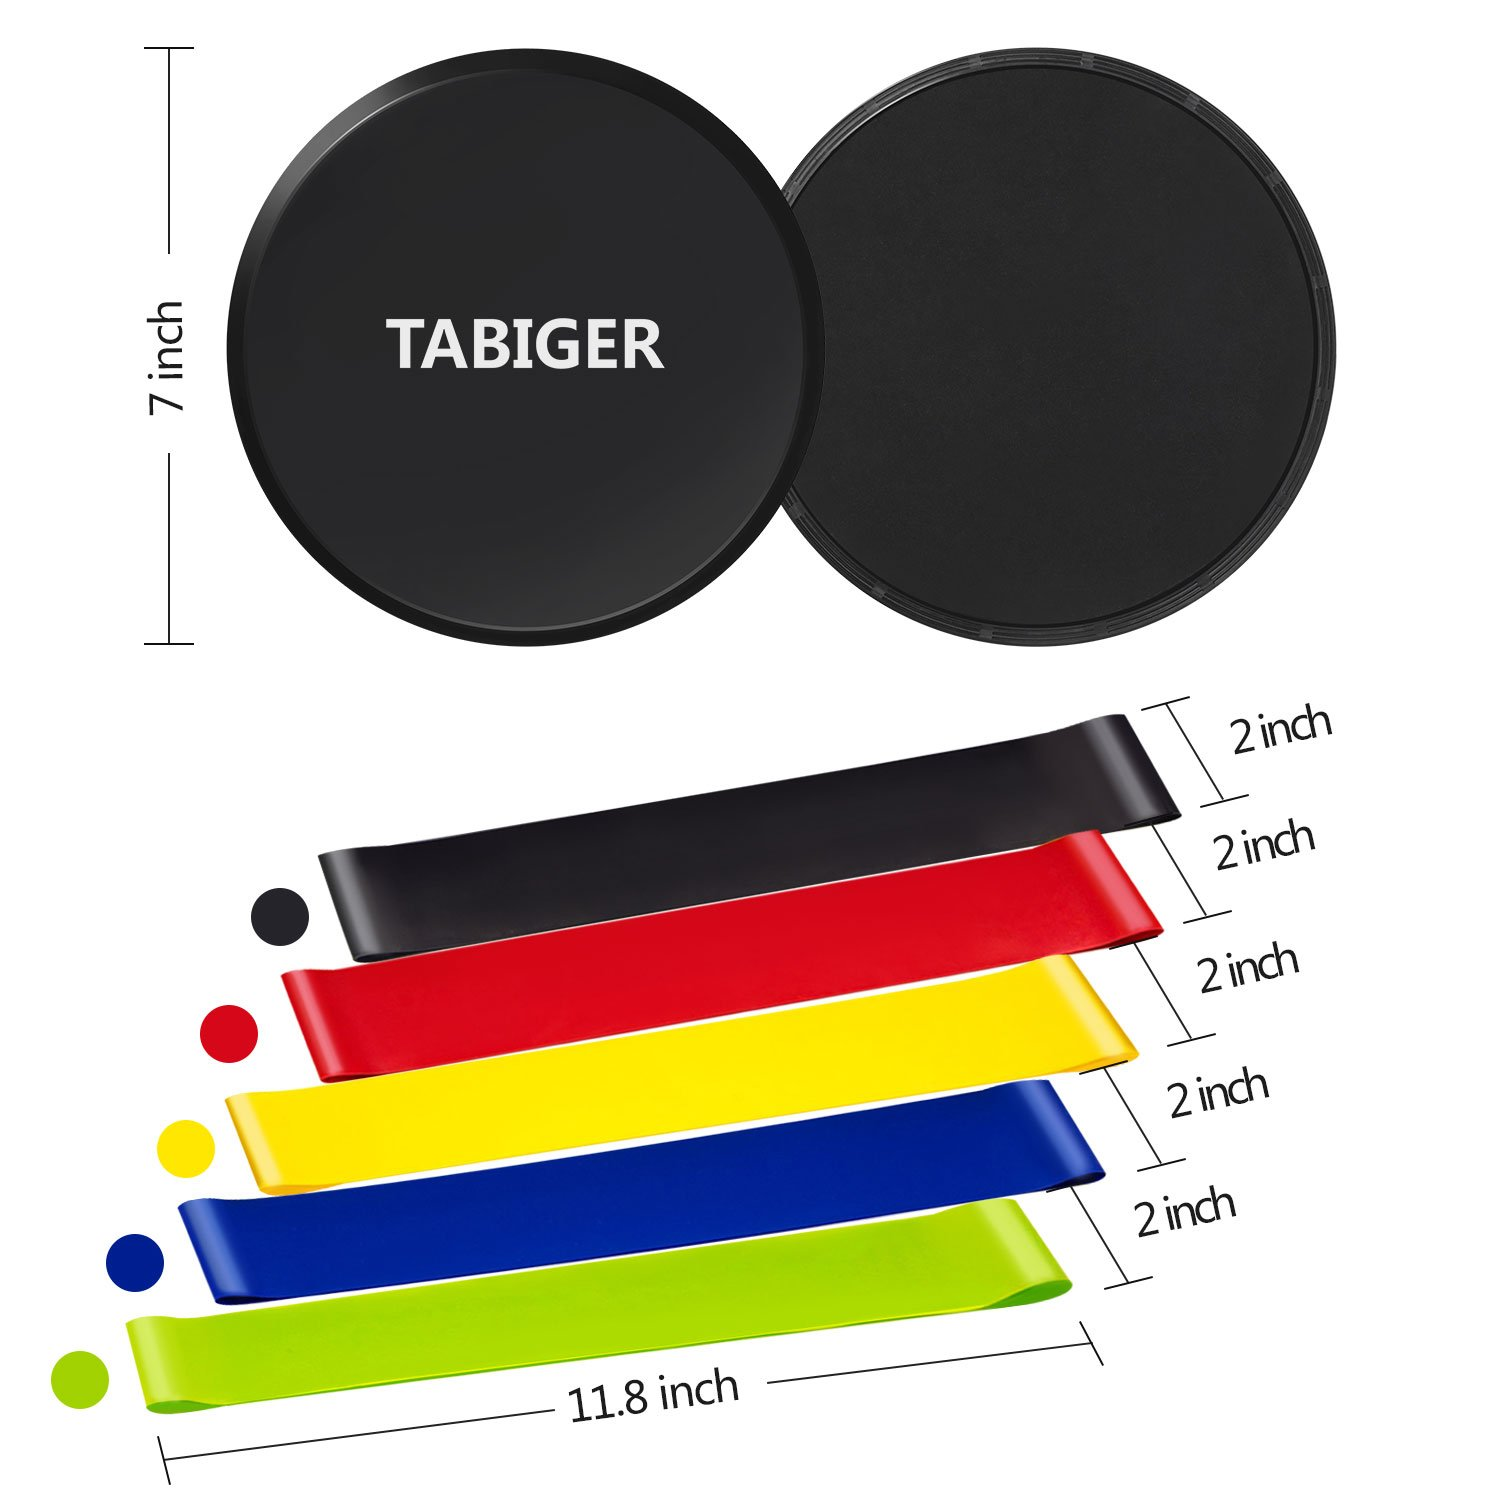 Tabiger Resistance Bands for Legs and Butt, Core Sliders and Resistance Bands Set, 5 Fitness Bands and 2 Gliding Discs with Carry Bag for Sport, Abdominal Exercise, Strengthen, Physical Therapy by Tabiger (Image #2)